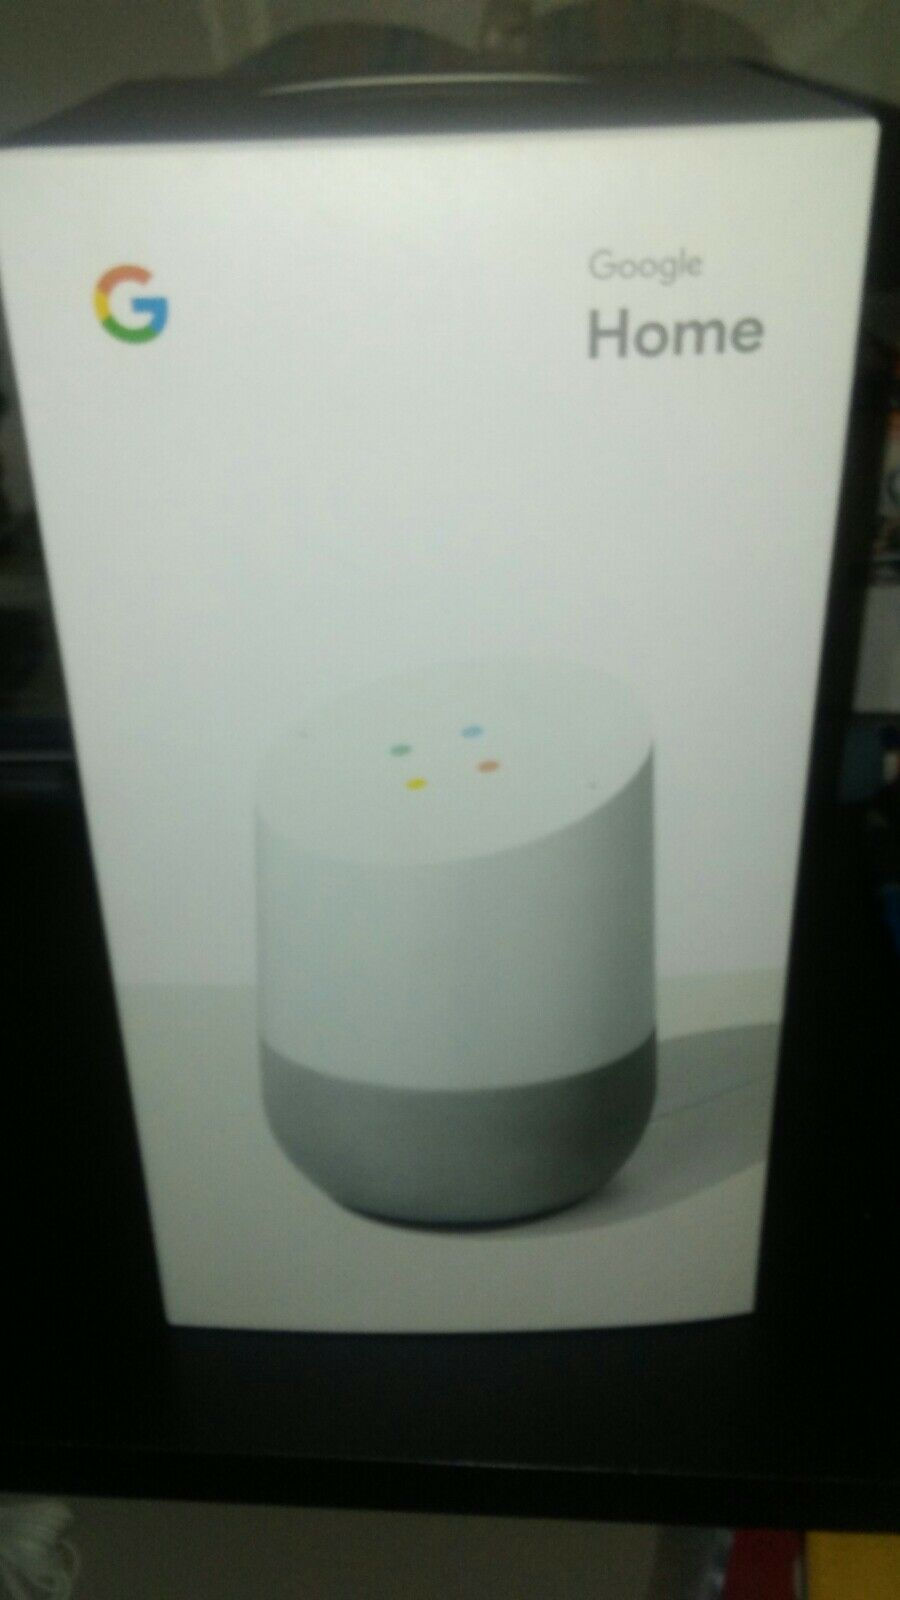 Google Home - NEW IN BOX NEVER OPENED